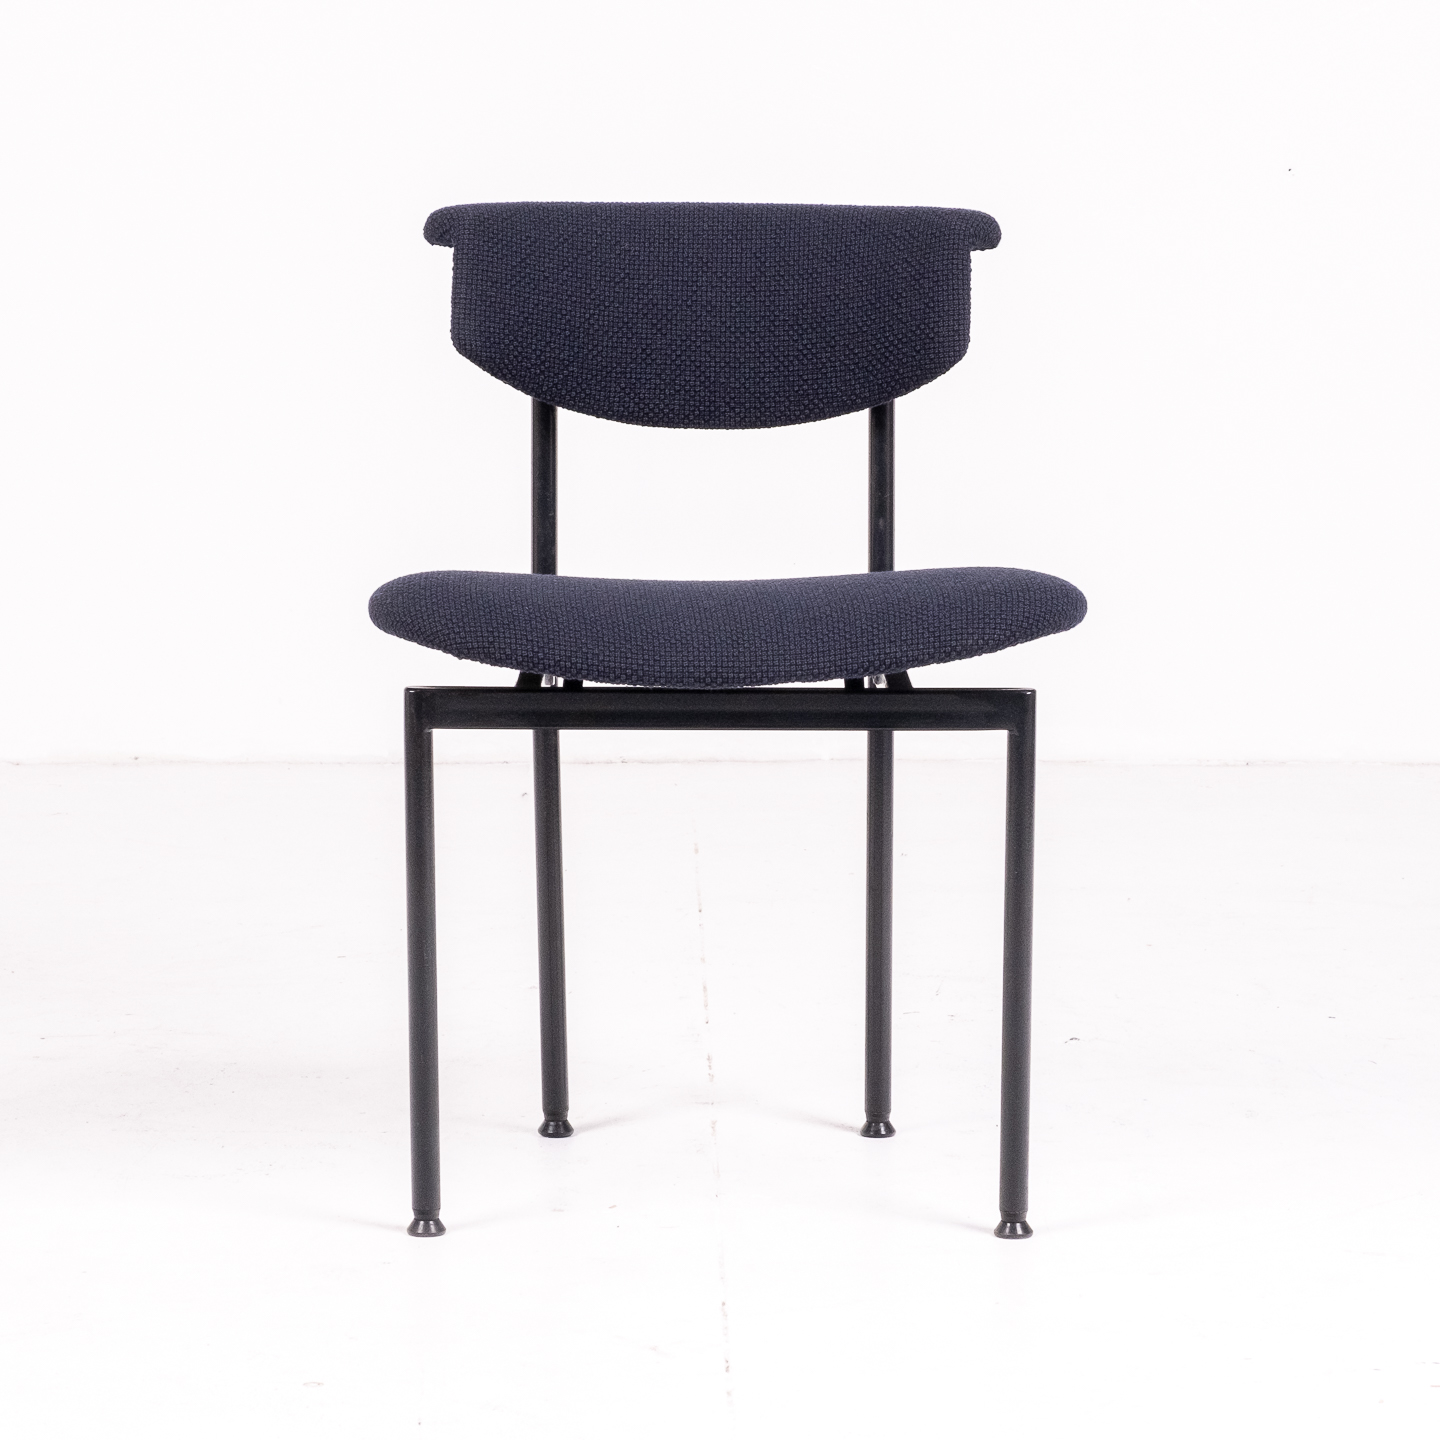 Set Of Four Meander Alpha Dining Chairs By Rudolf Wolf For Gaasbeek & Van Tiel In New Kvadart Upholstery, 1960s, The Netherlands65